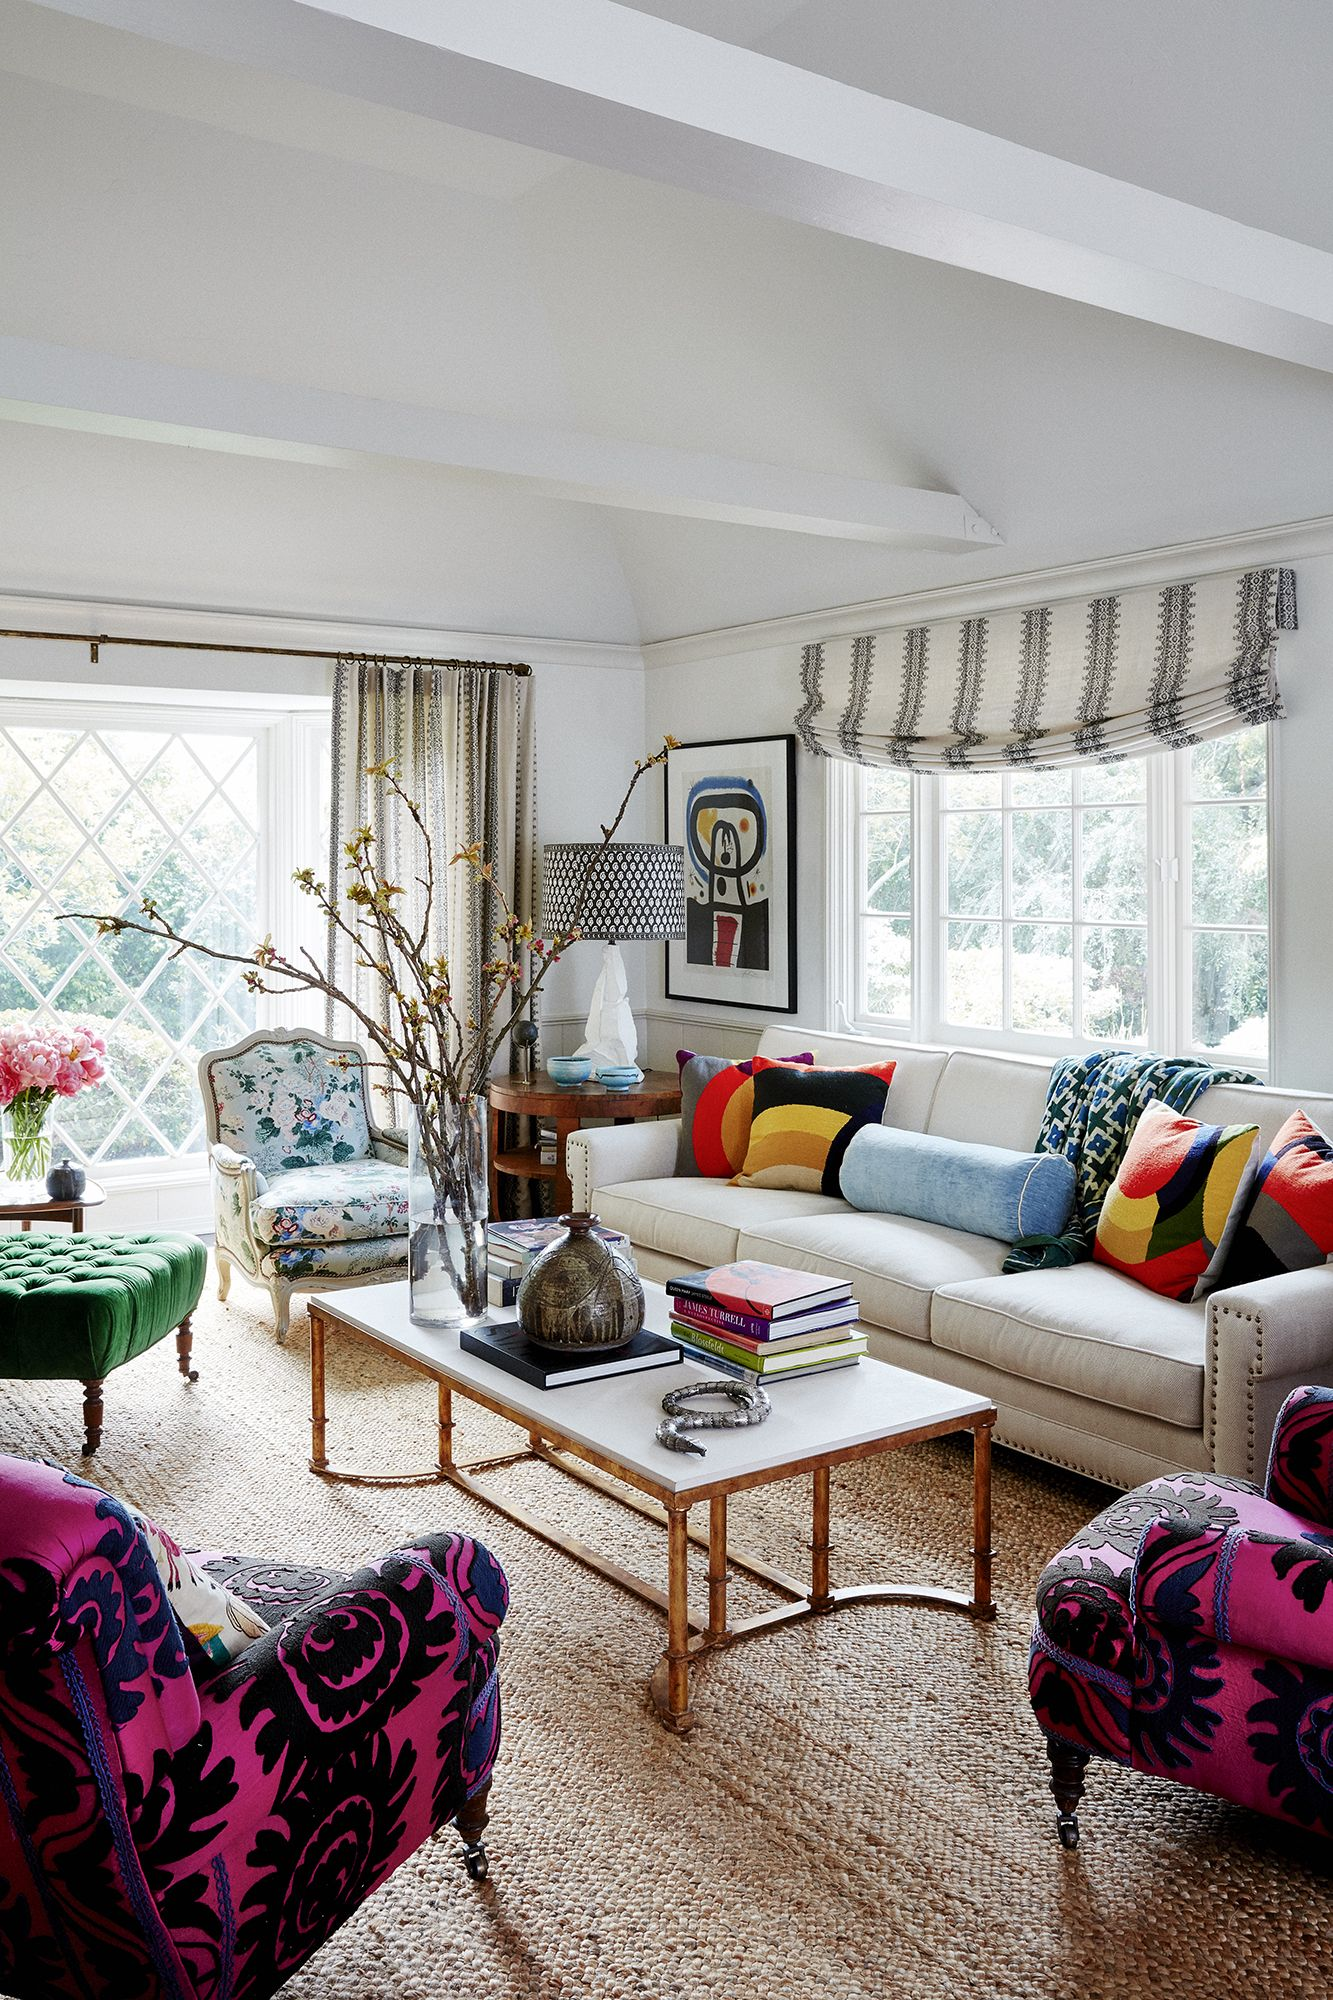 Remodel Designer Minnie Driver's Hollywood Hills House Tour - Bohemian Decor